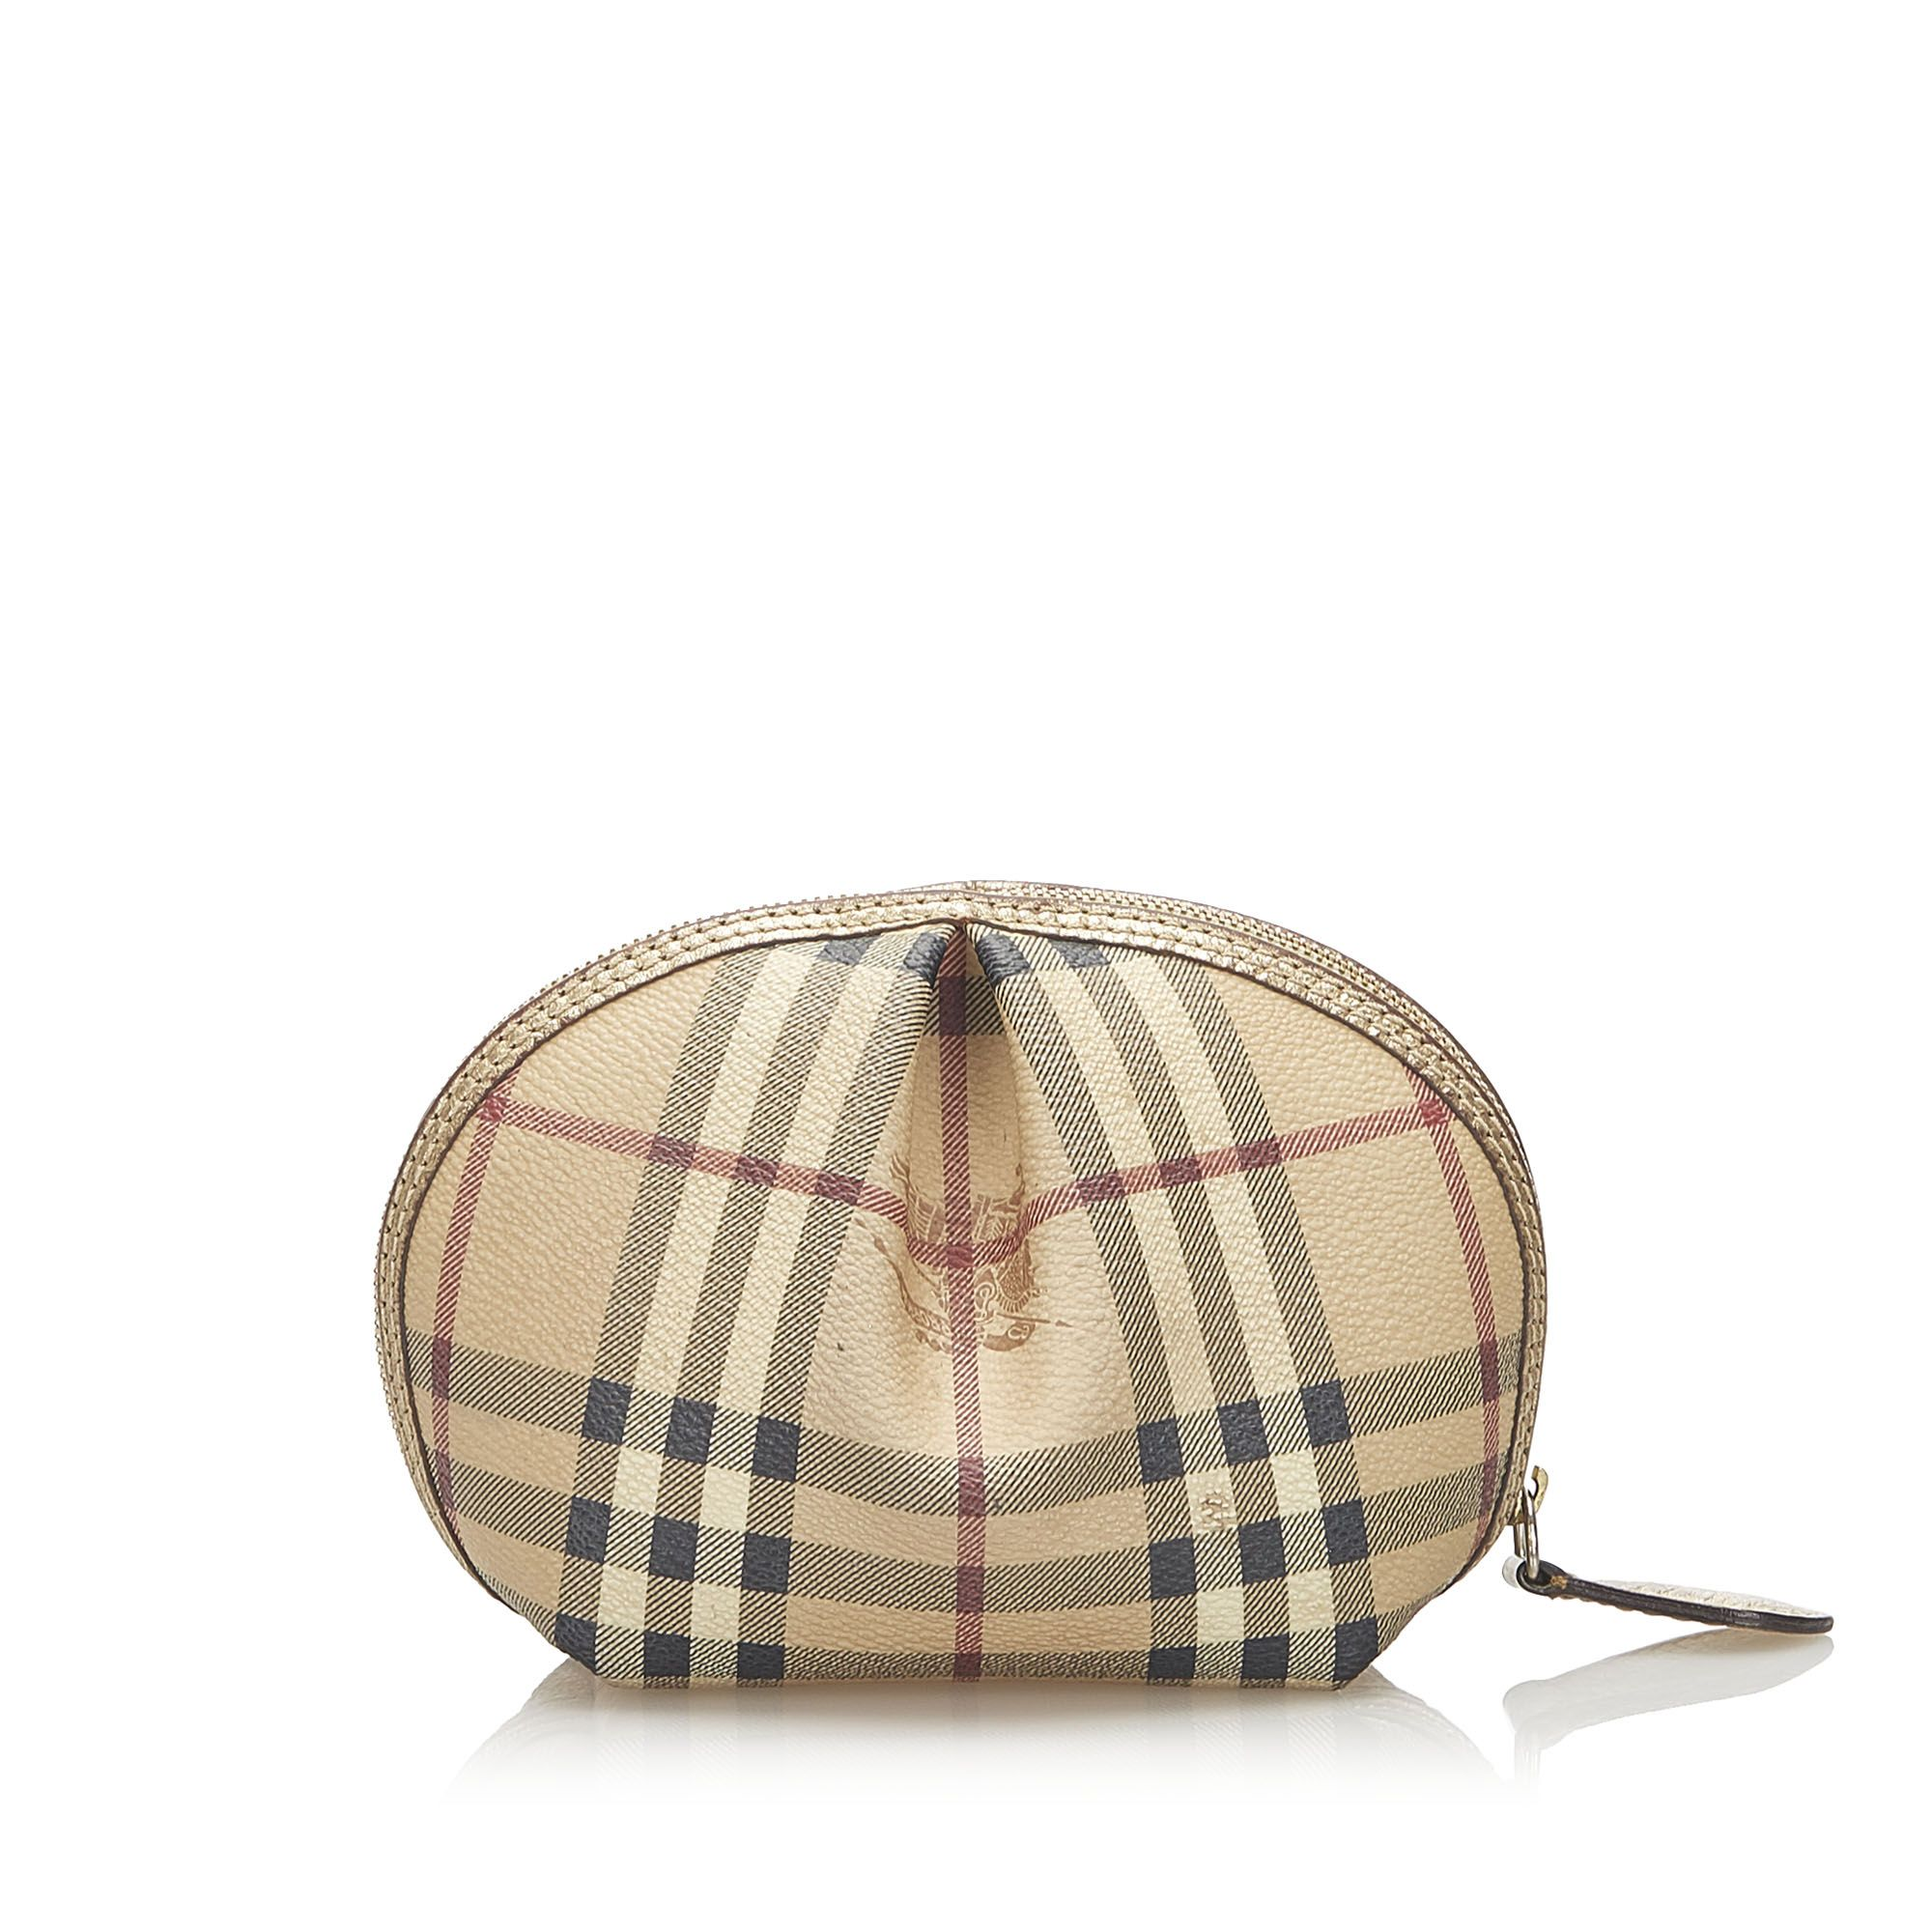 Vintage Burberry House Check Canvas Pouch Brown